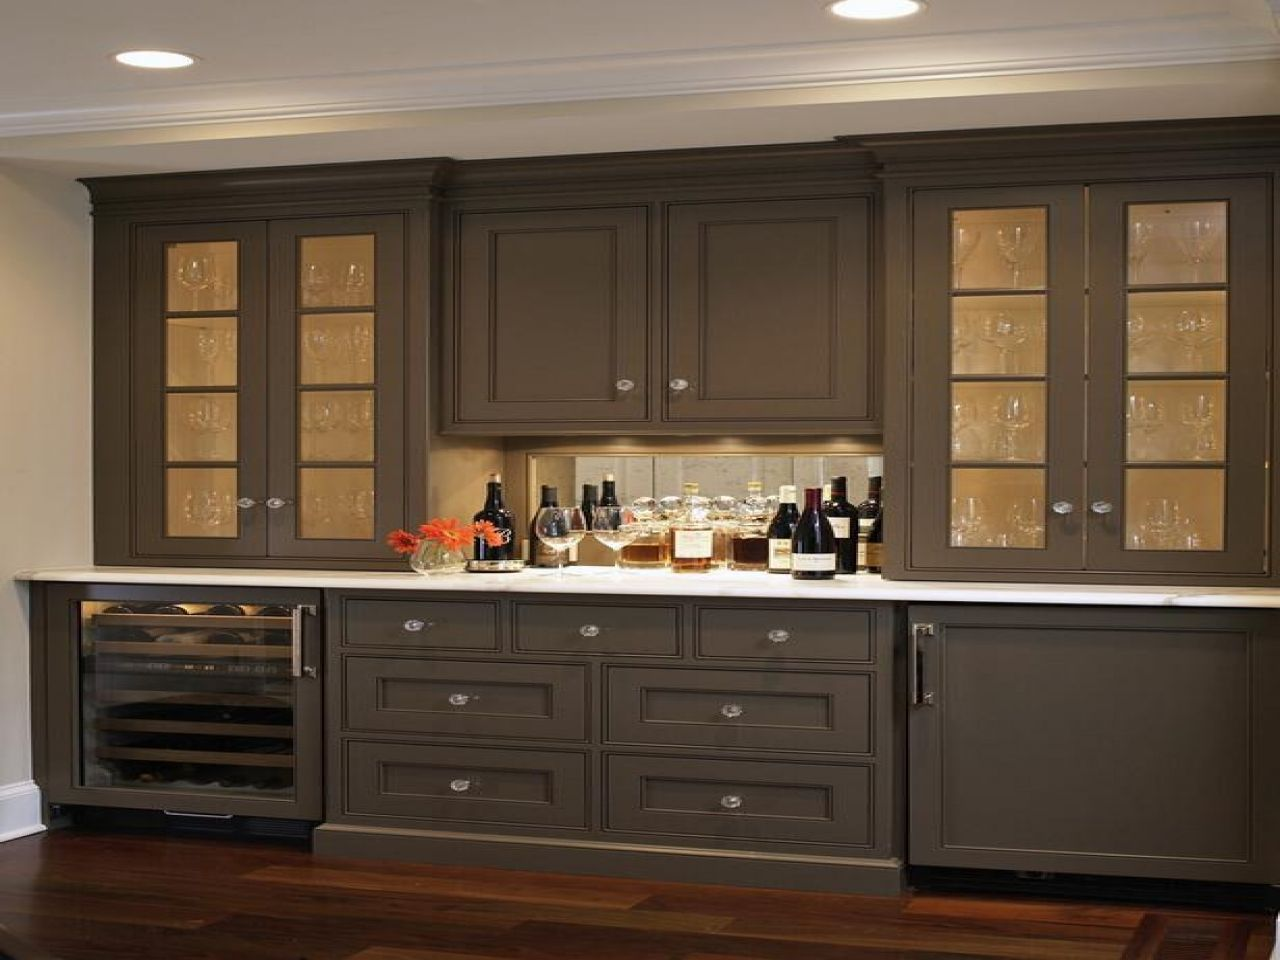 Idea For Dining Room Built Cabinet Dining Room Wall Ideas Idea For Dining Kitchen Cabinet Color Options Kitchen Cabinet Colors Painted Kitchen Cabinets Colors